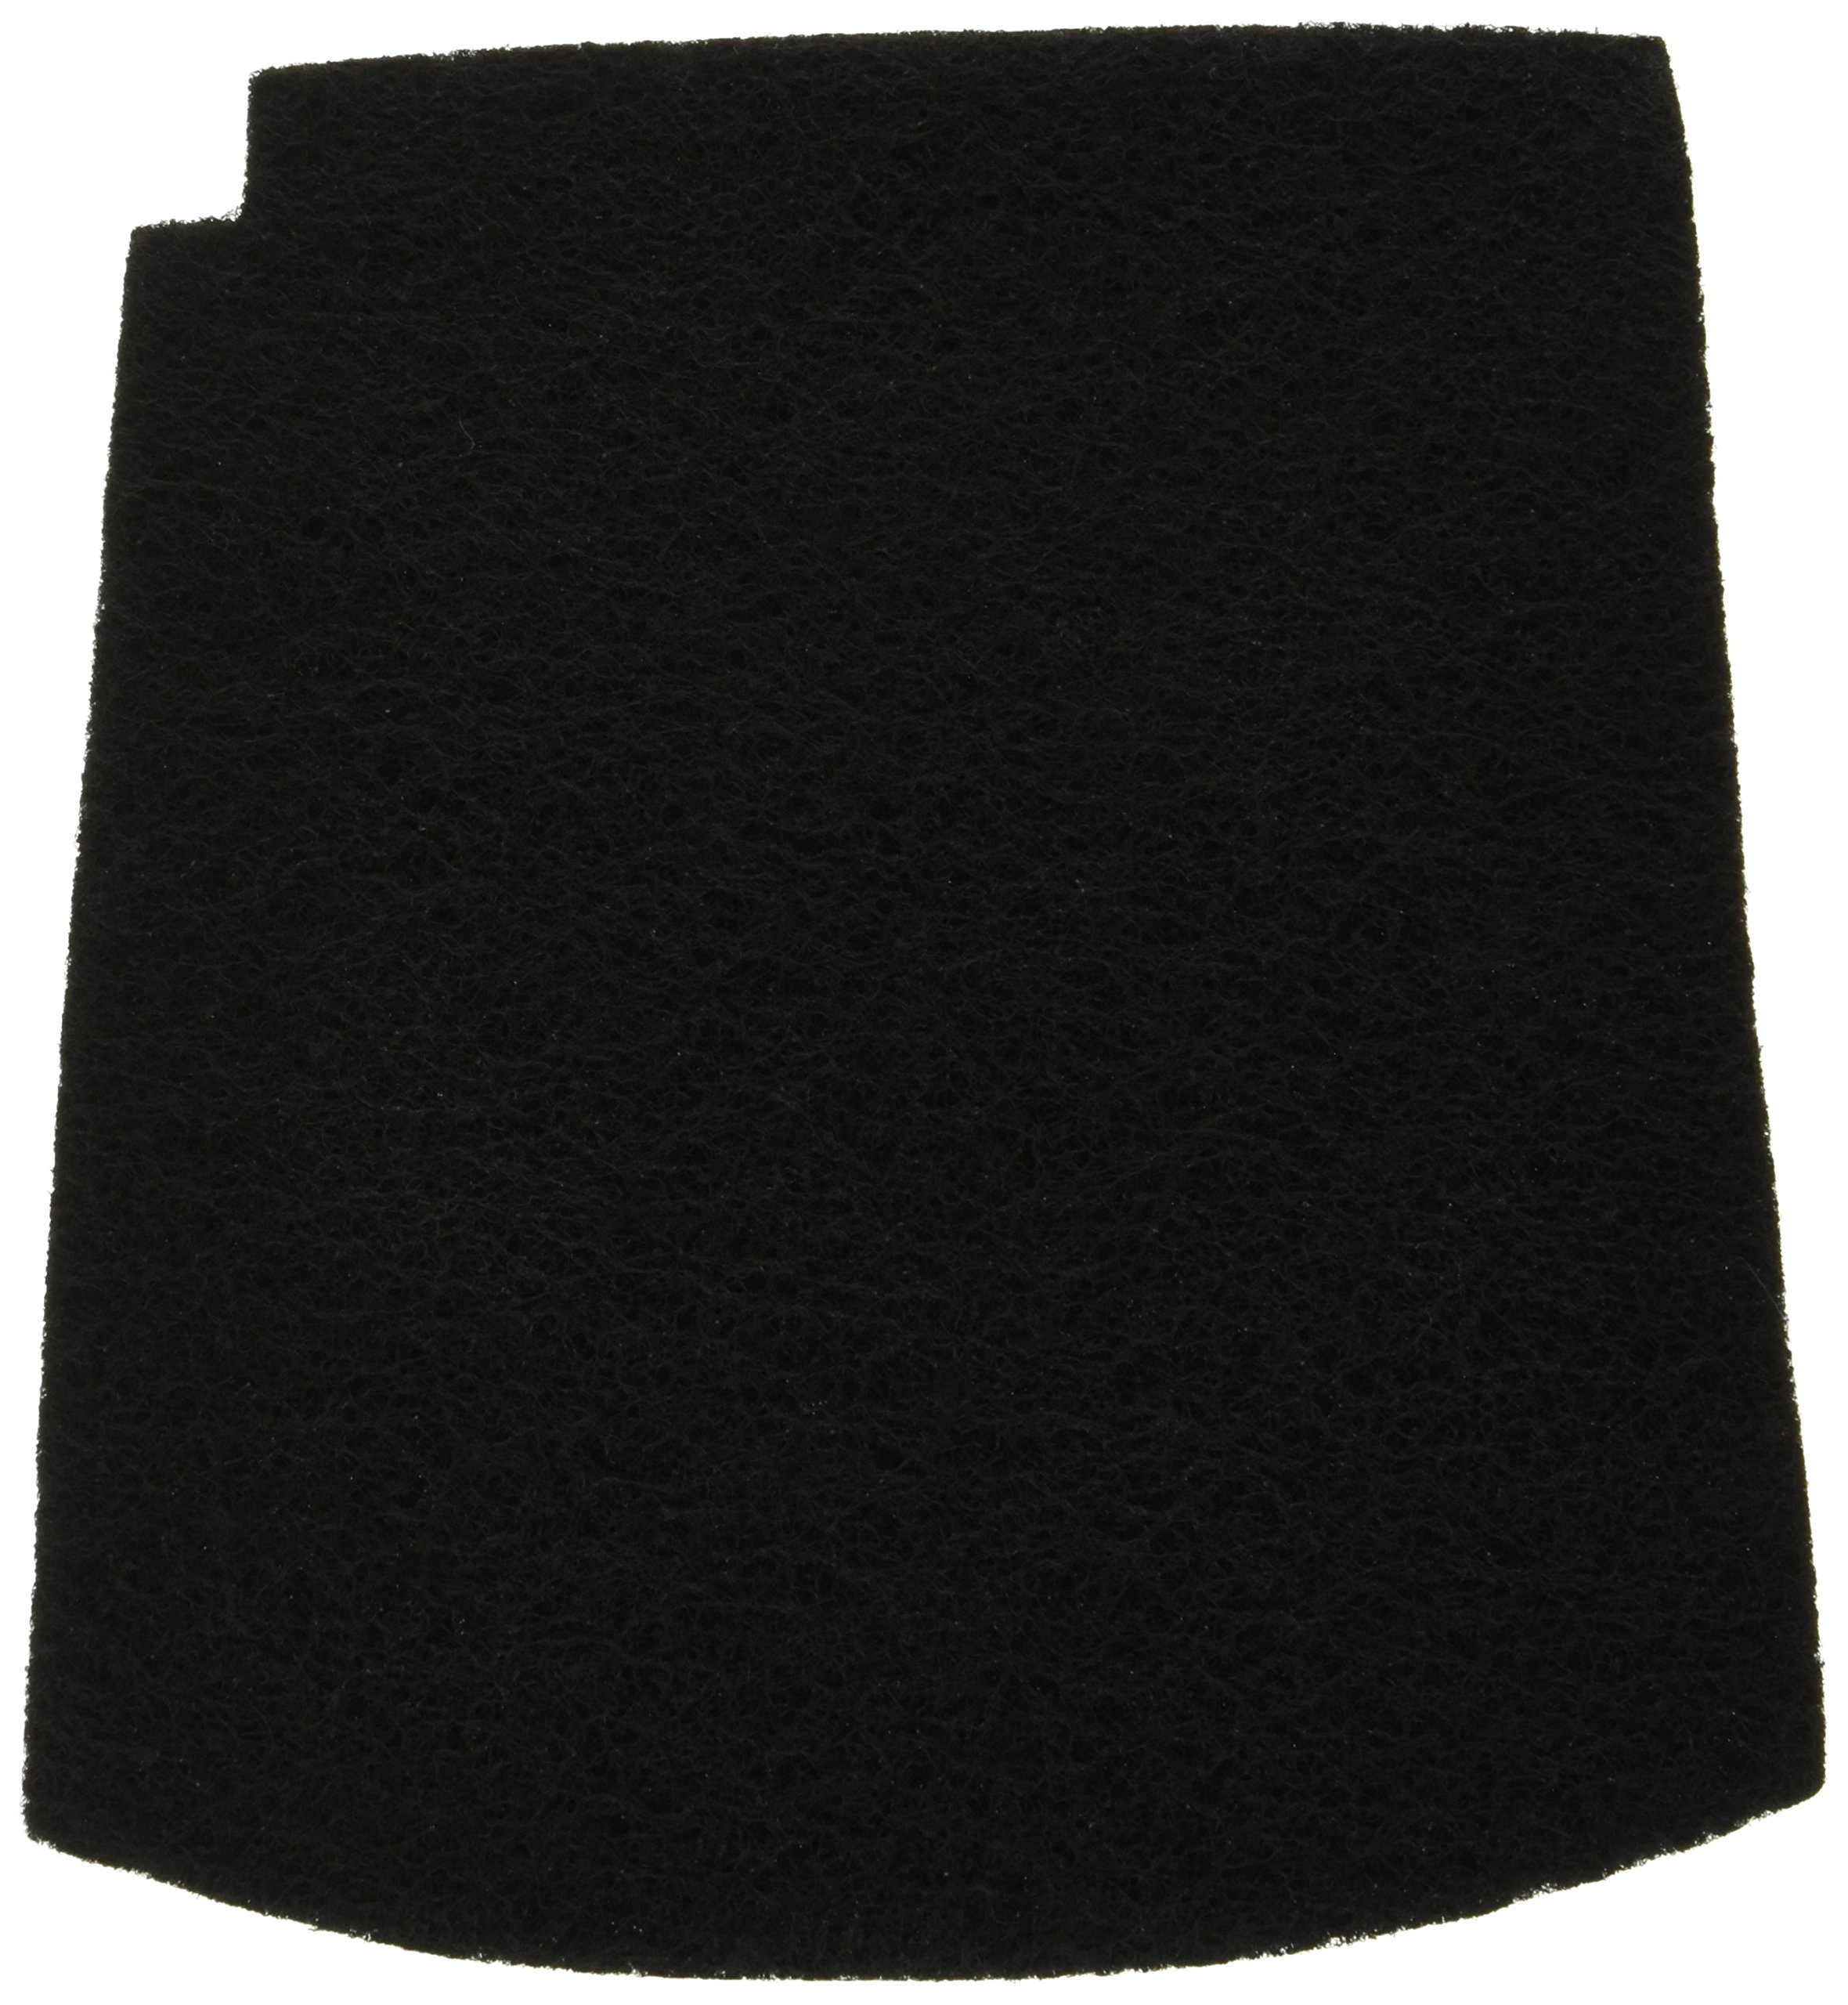 Hamilton Beach Replacement Carbon Filter. Works with TrueAir 04384, 04386, 04532, 04532GM, 04530 (04290G)